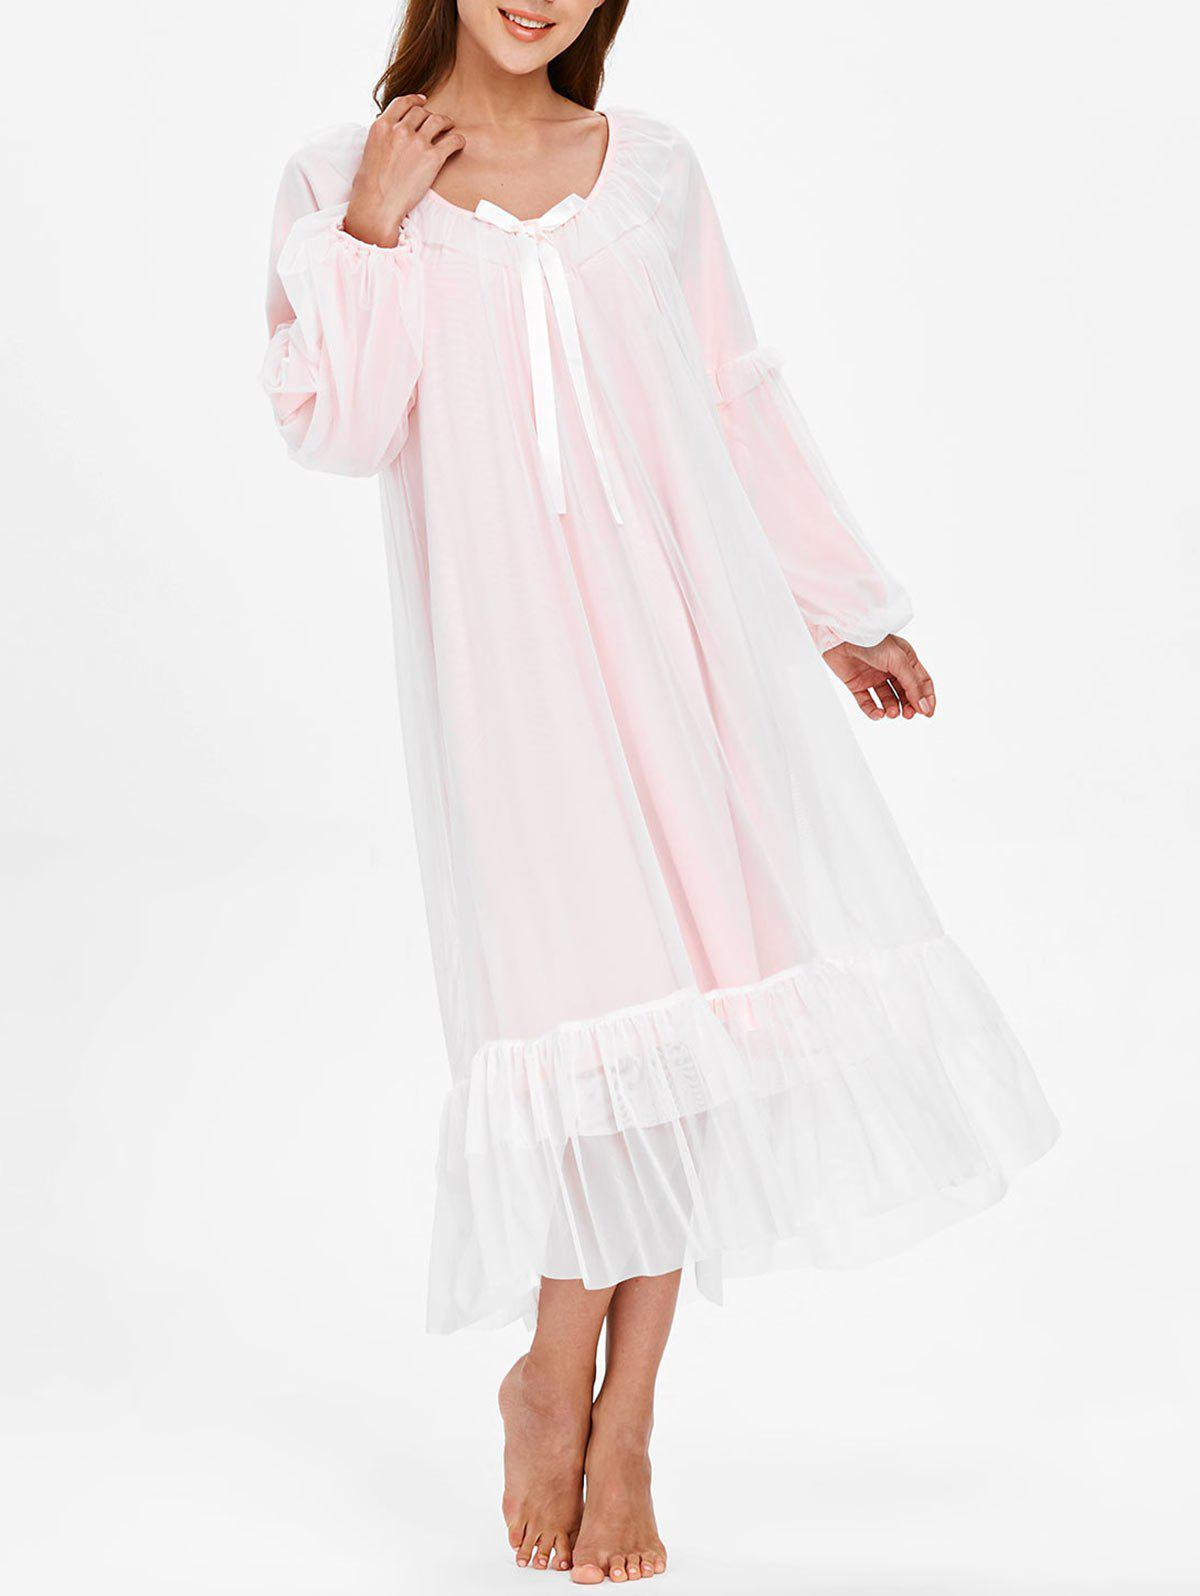 Online Long Sleeve Lace Bowknot Nightgown Dress